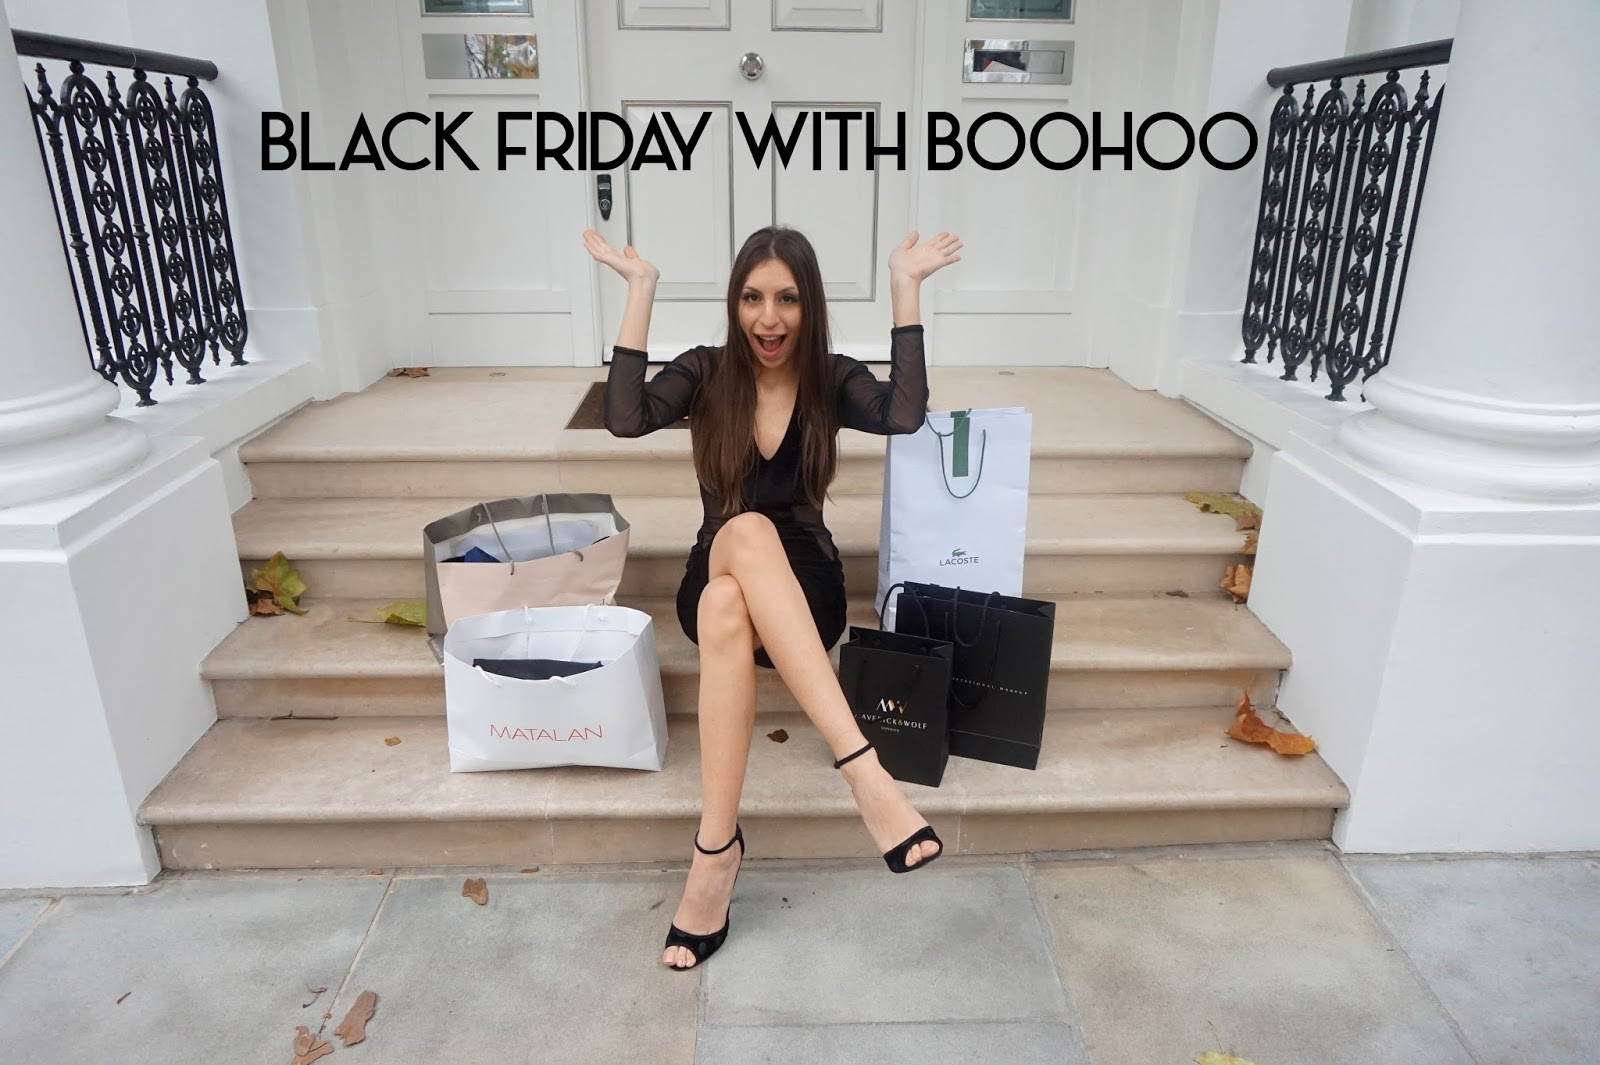 Boohoo Black Friday